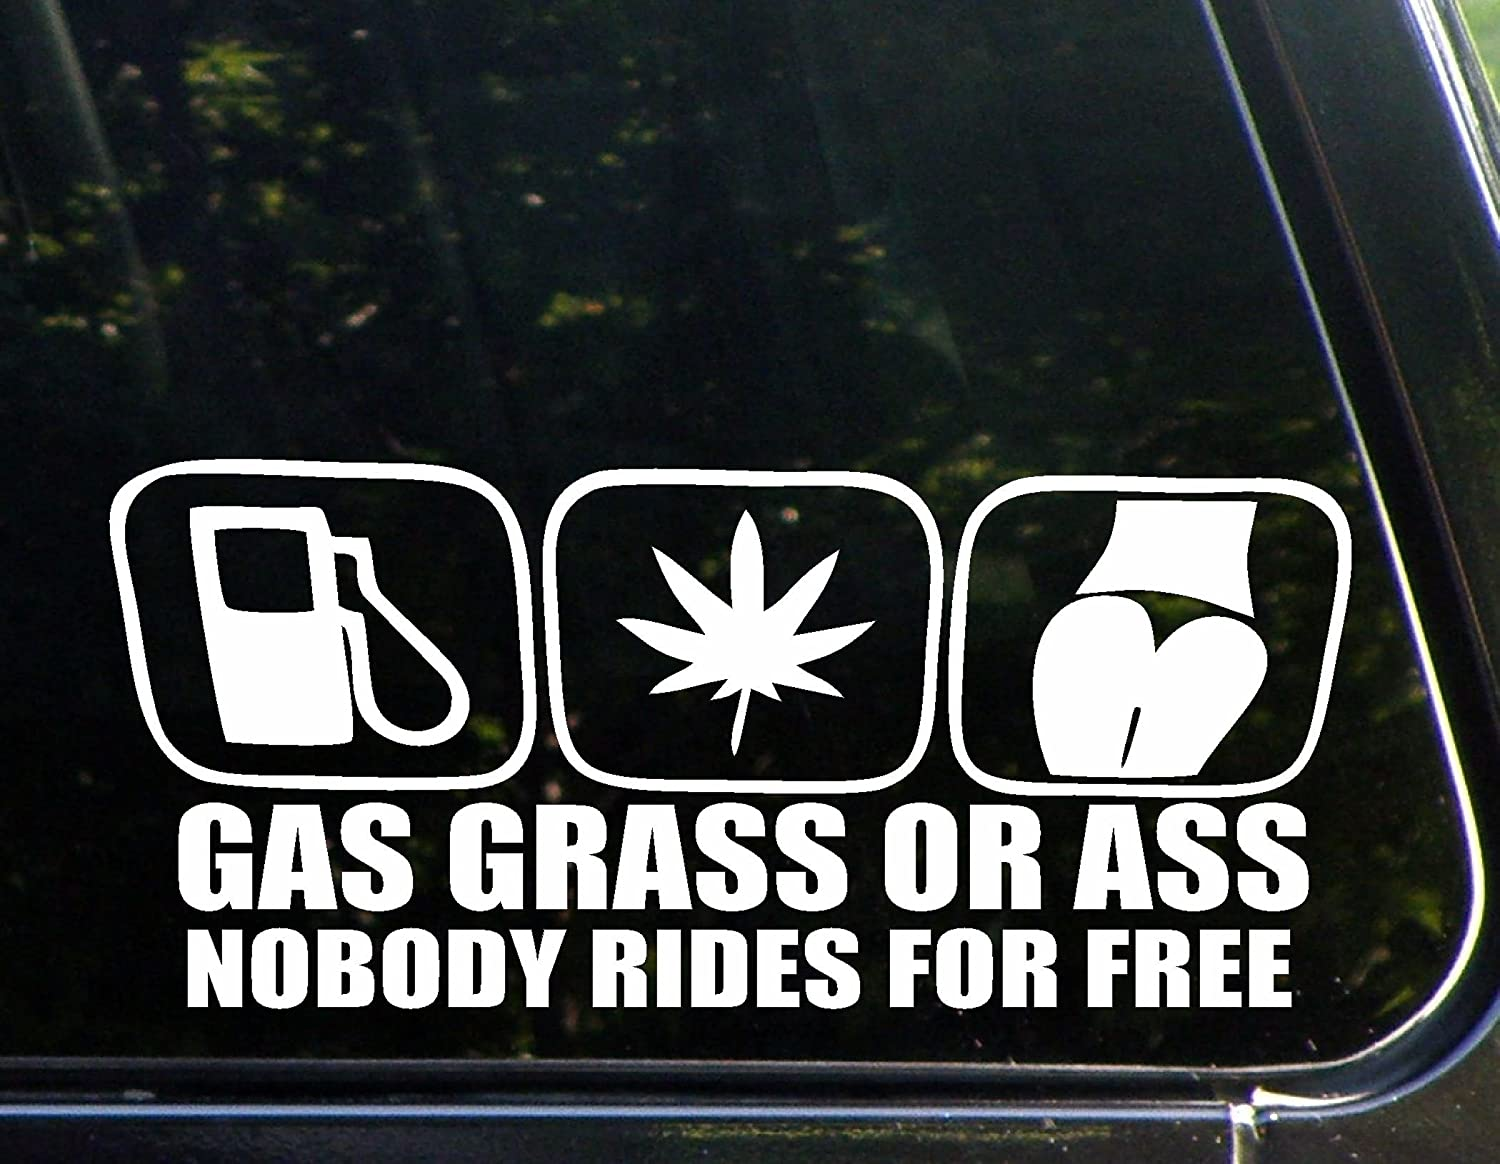 Gas Grass Ass Nobody Rides For Free